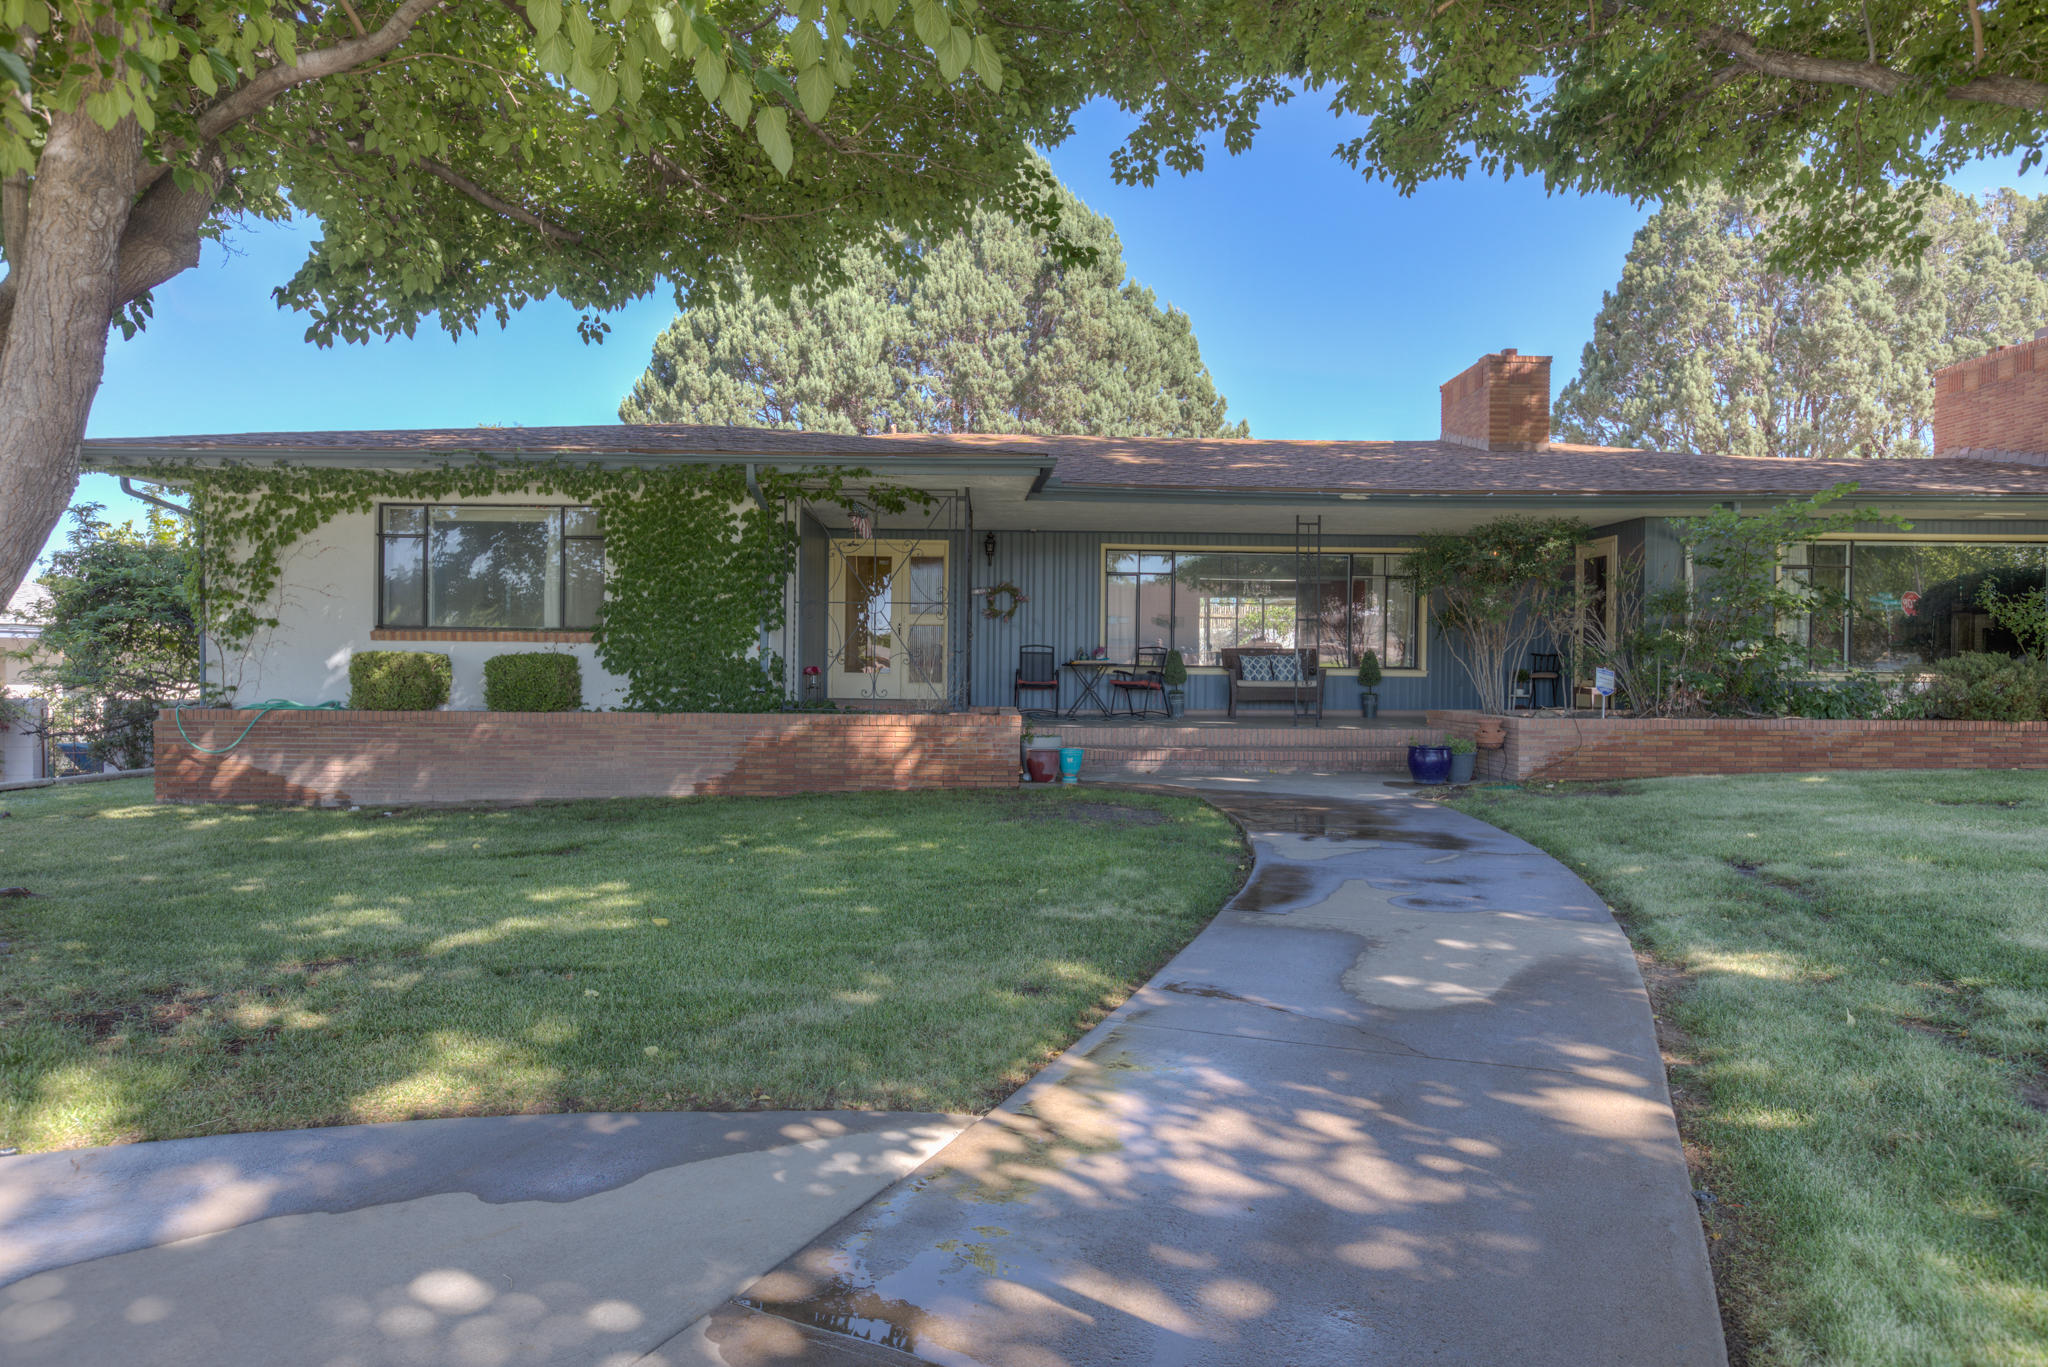 4215 AVENIDA LA RESOLANA NE, ALBUQUERQUE, NM 87110